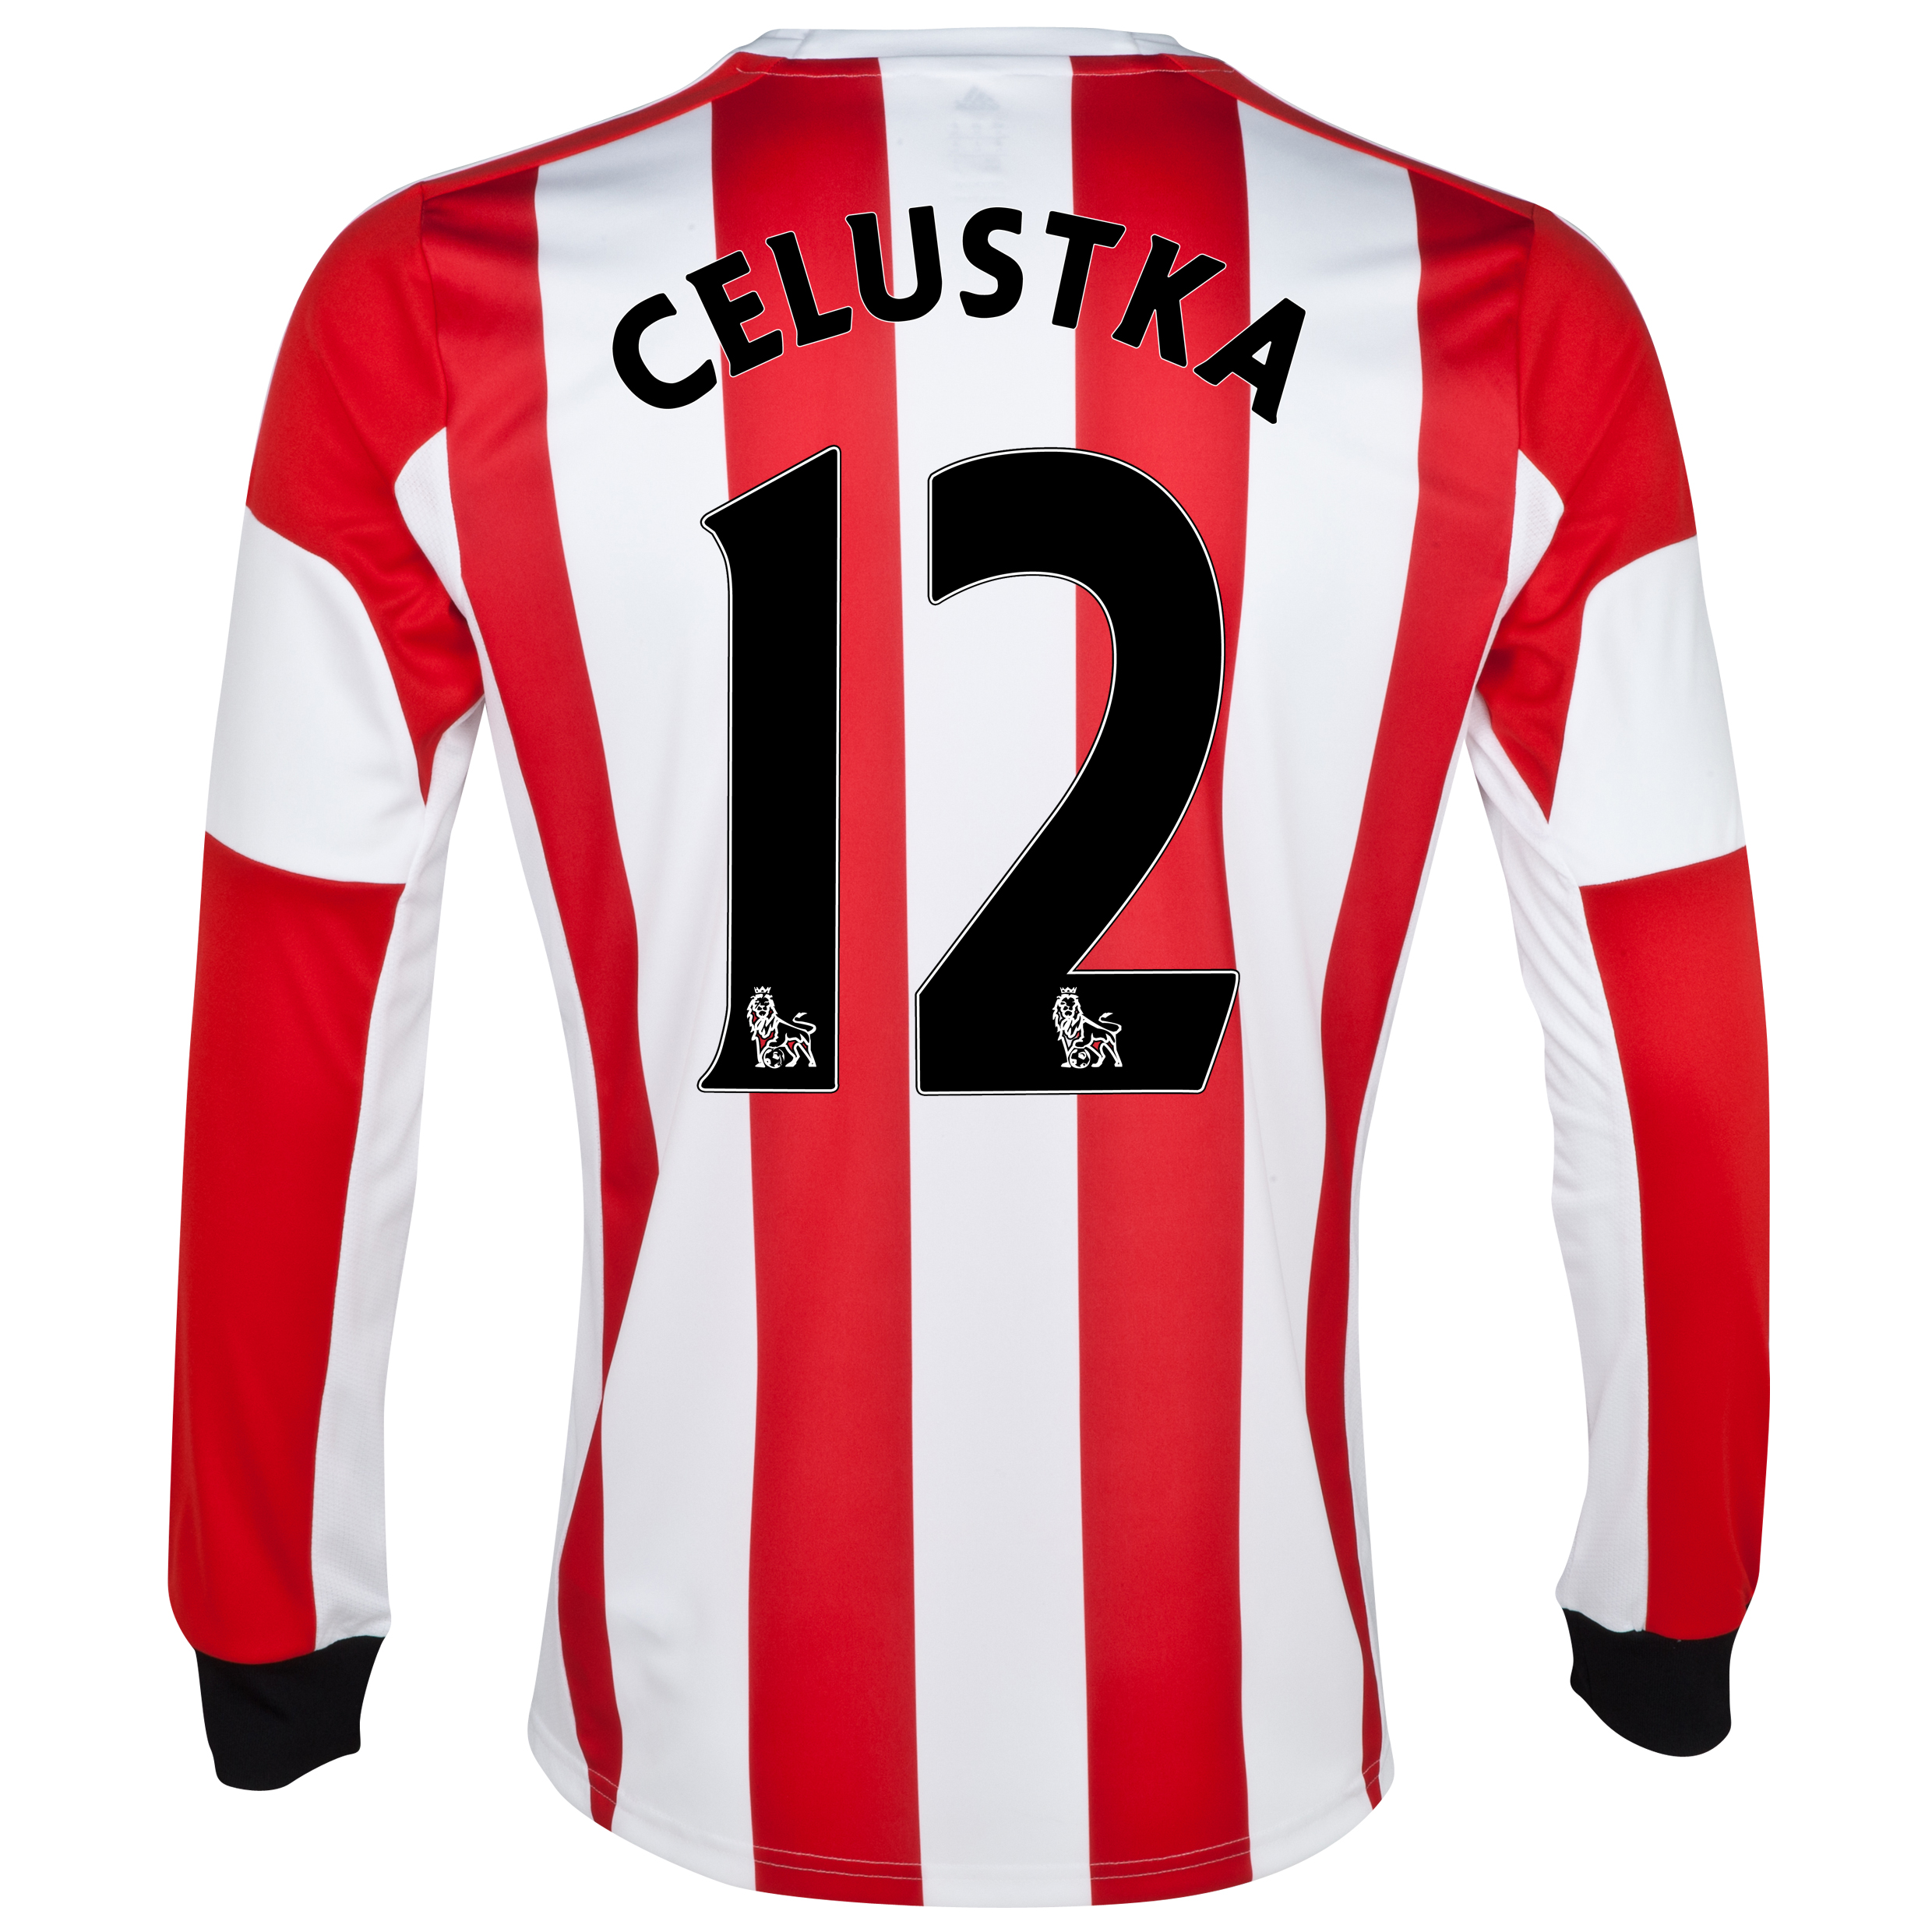 Sunderland Home Shirt 2013/14 - Long Sleeved - Junior with Celustka 12 printing